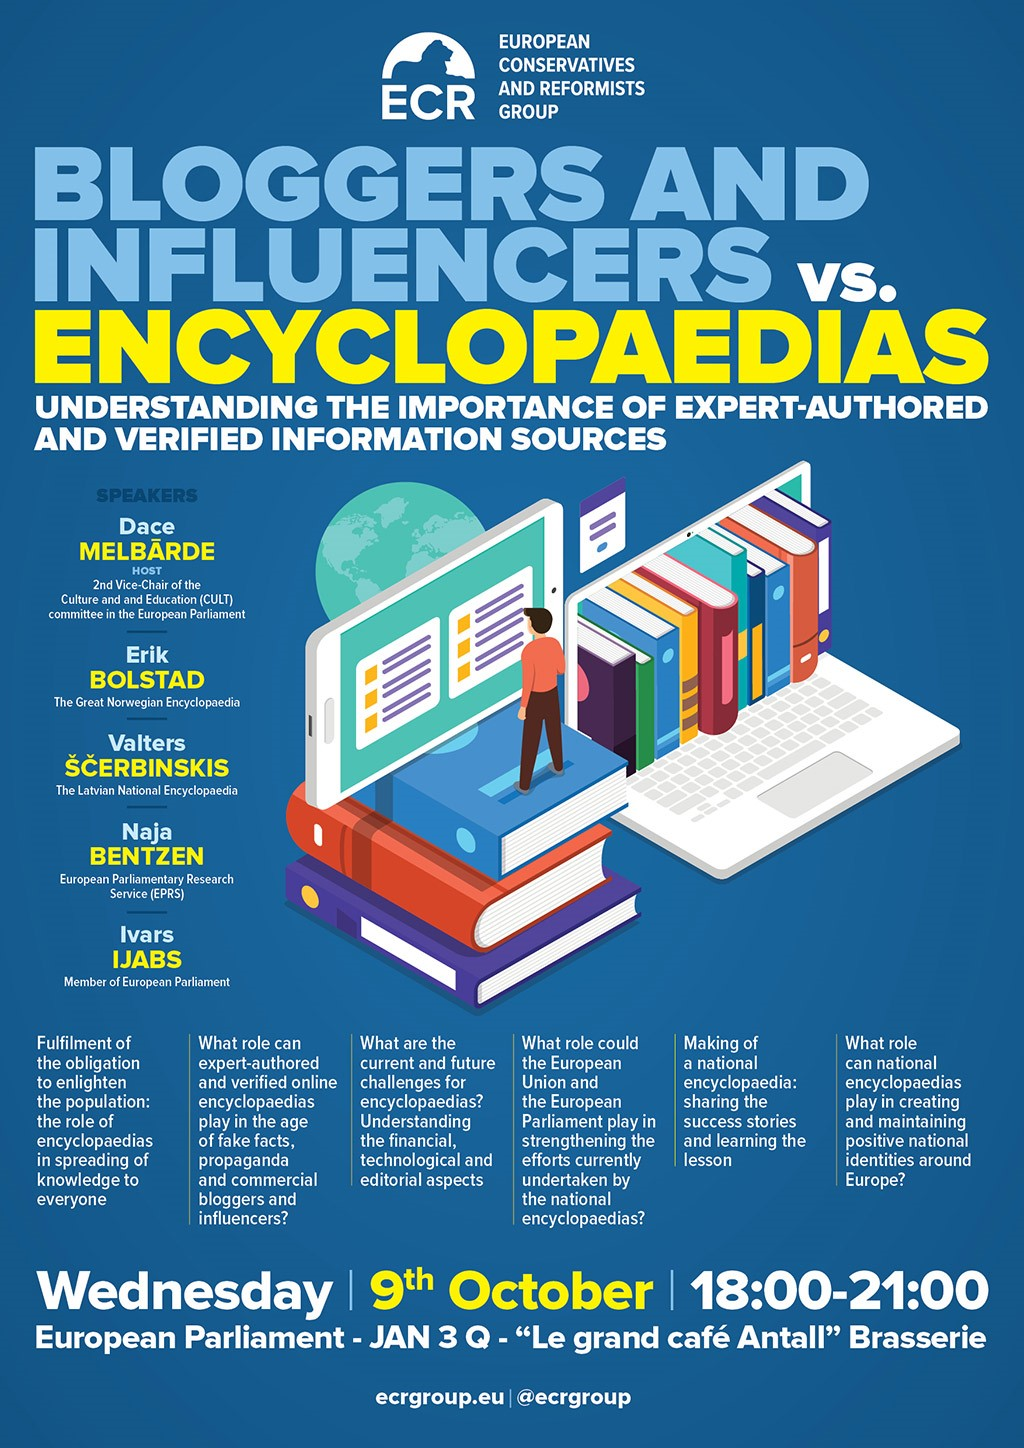 Bloggers and influencers vs. encyclopaedias